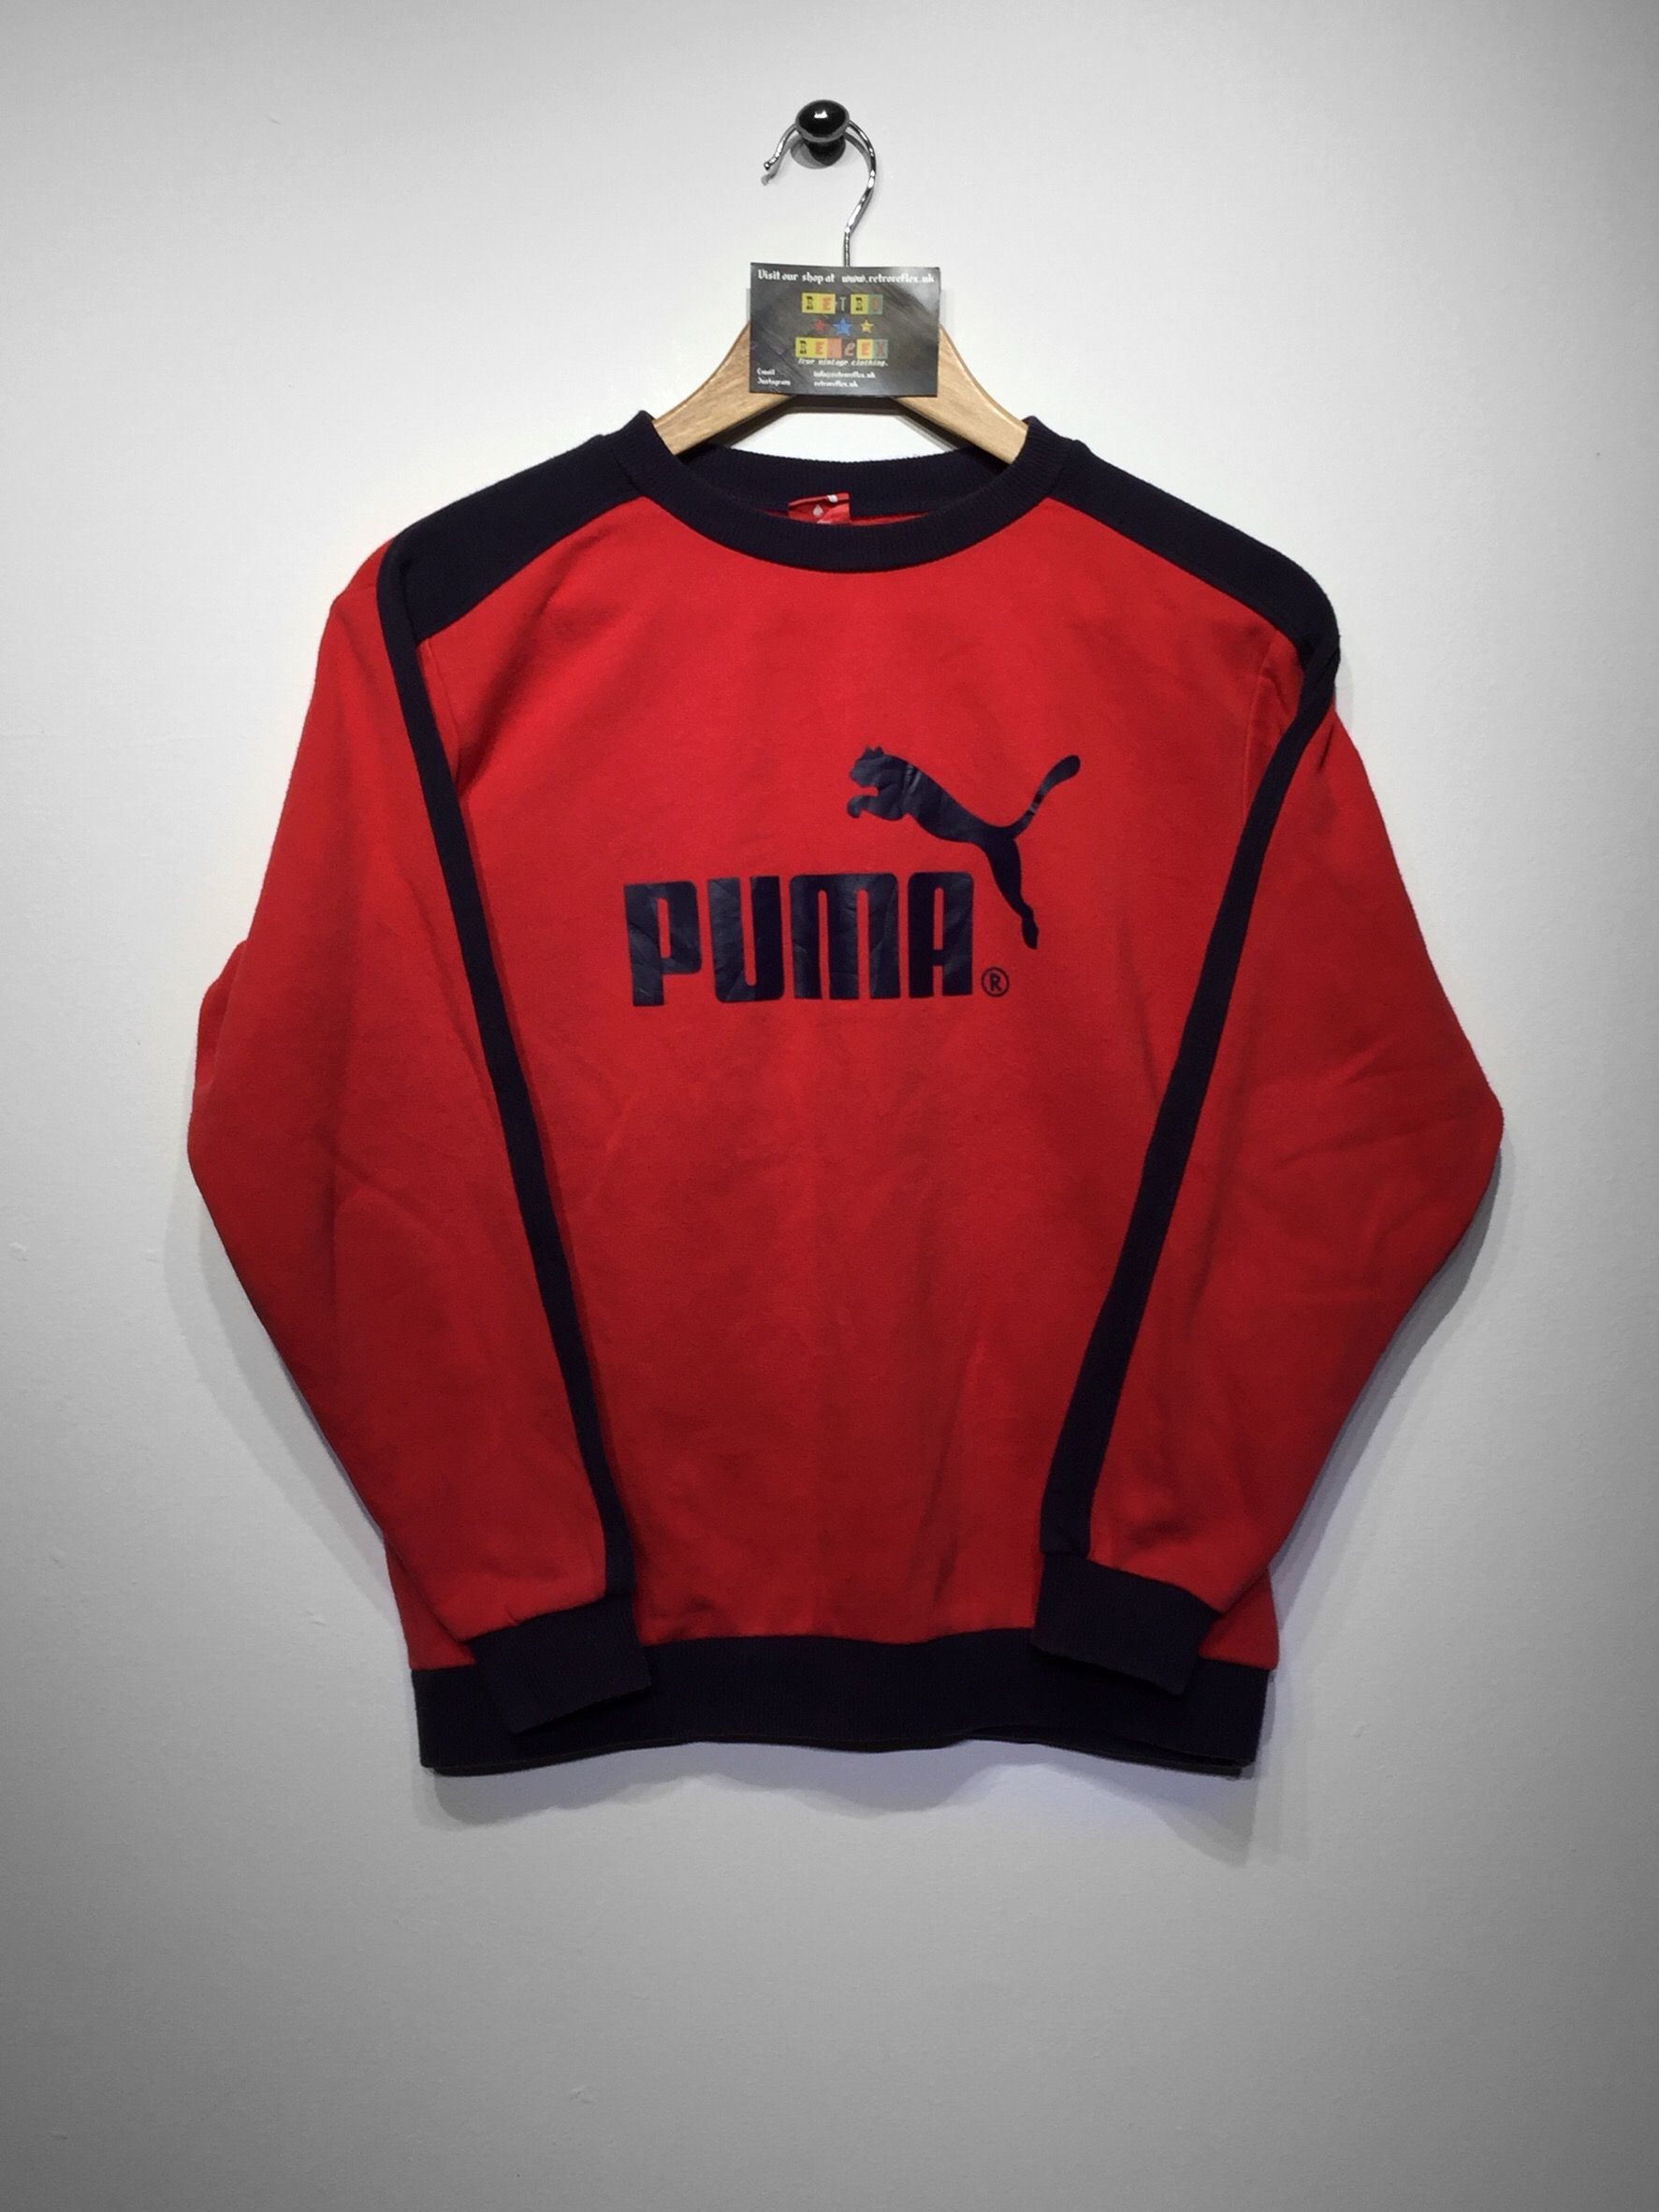 a5883f3df05e0a Puma sweatshirt size X Small £34 Website➡ www.retroreflex.uk ...